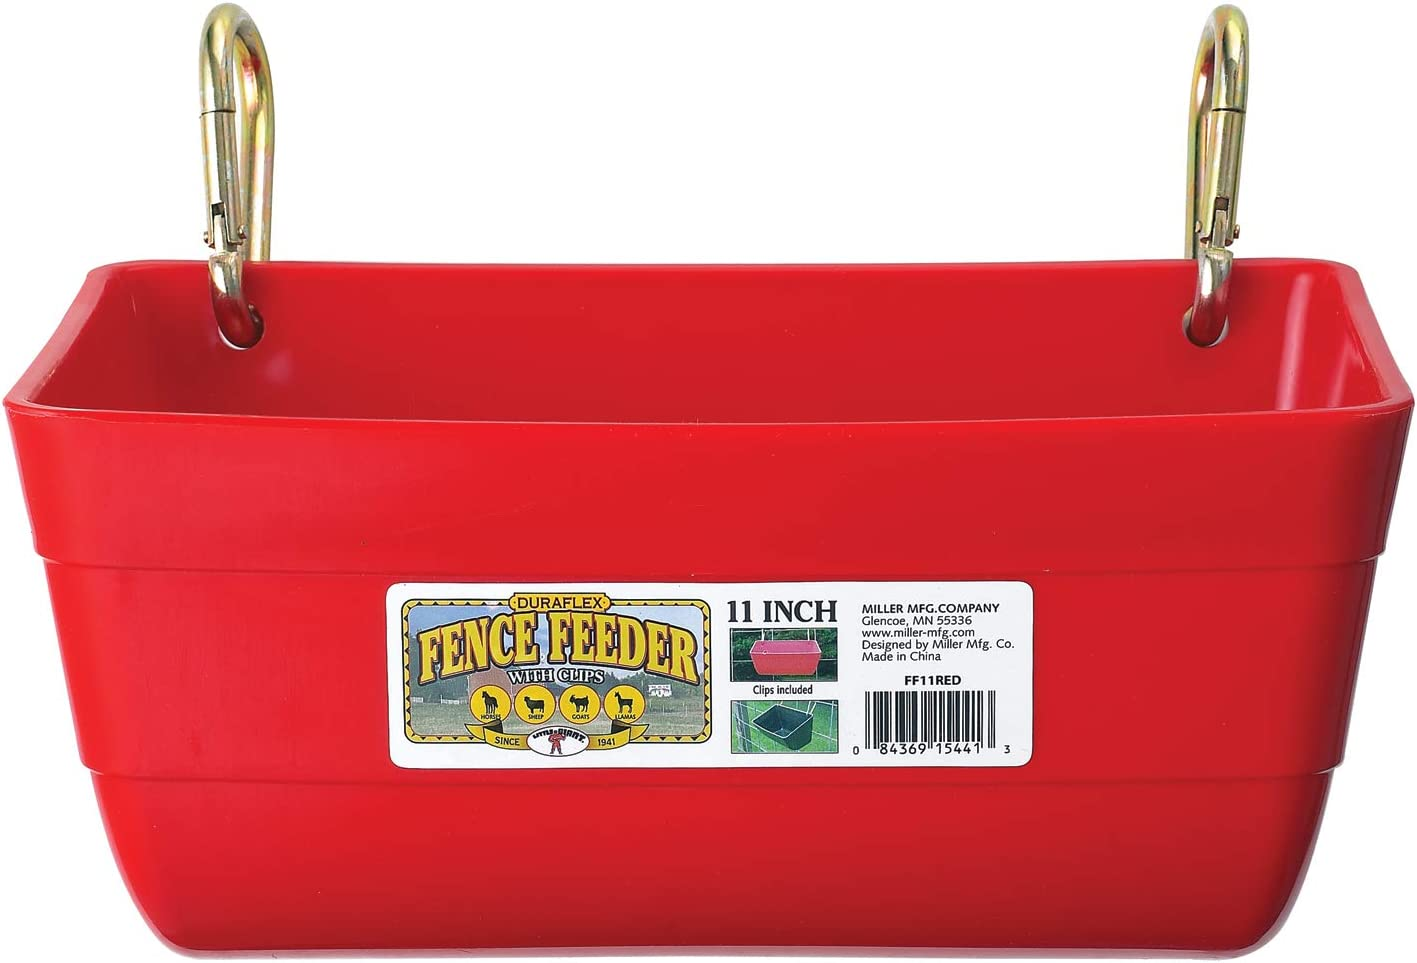 Little Giant Plastic Fence Feeder with Clips (Red) Heavy Duty Mountable Feed Trough Bucket for Livestock & Pets (4.5 Quart) (Item No. FF11RED)